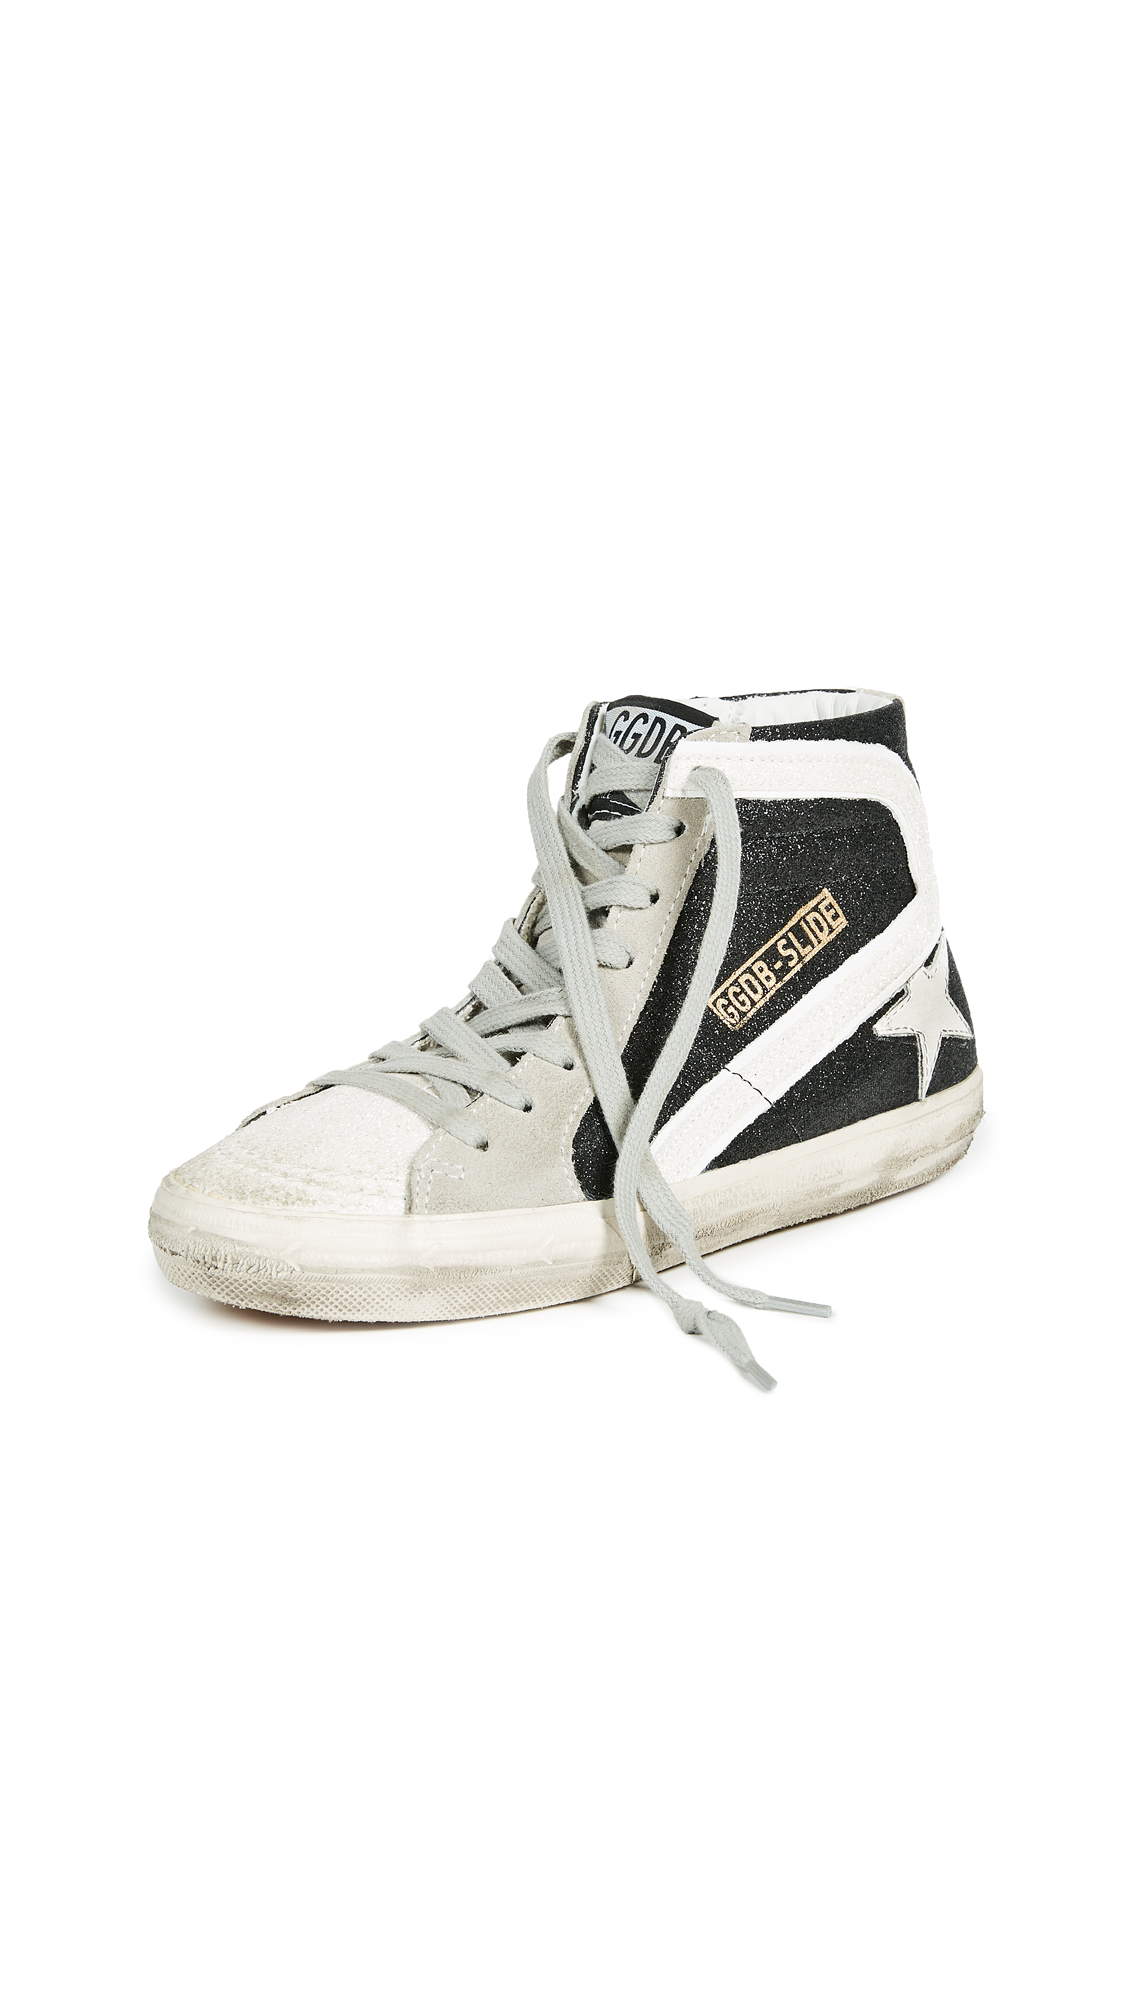 Golden Goose Slide Sneakers - Black/White